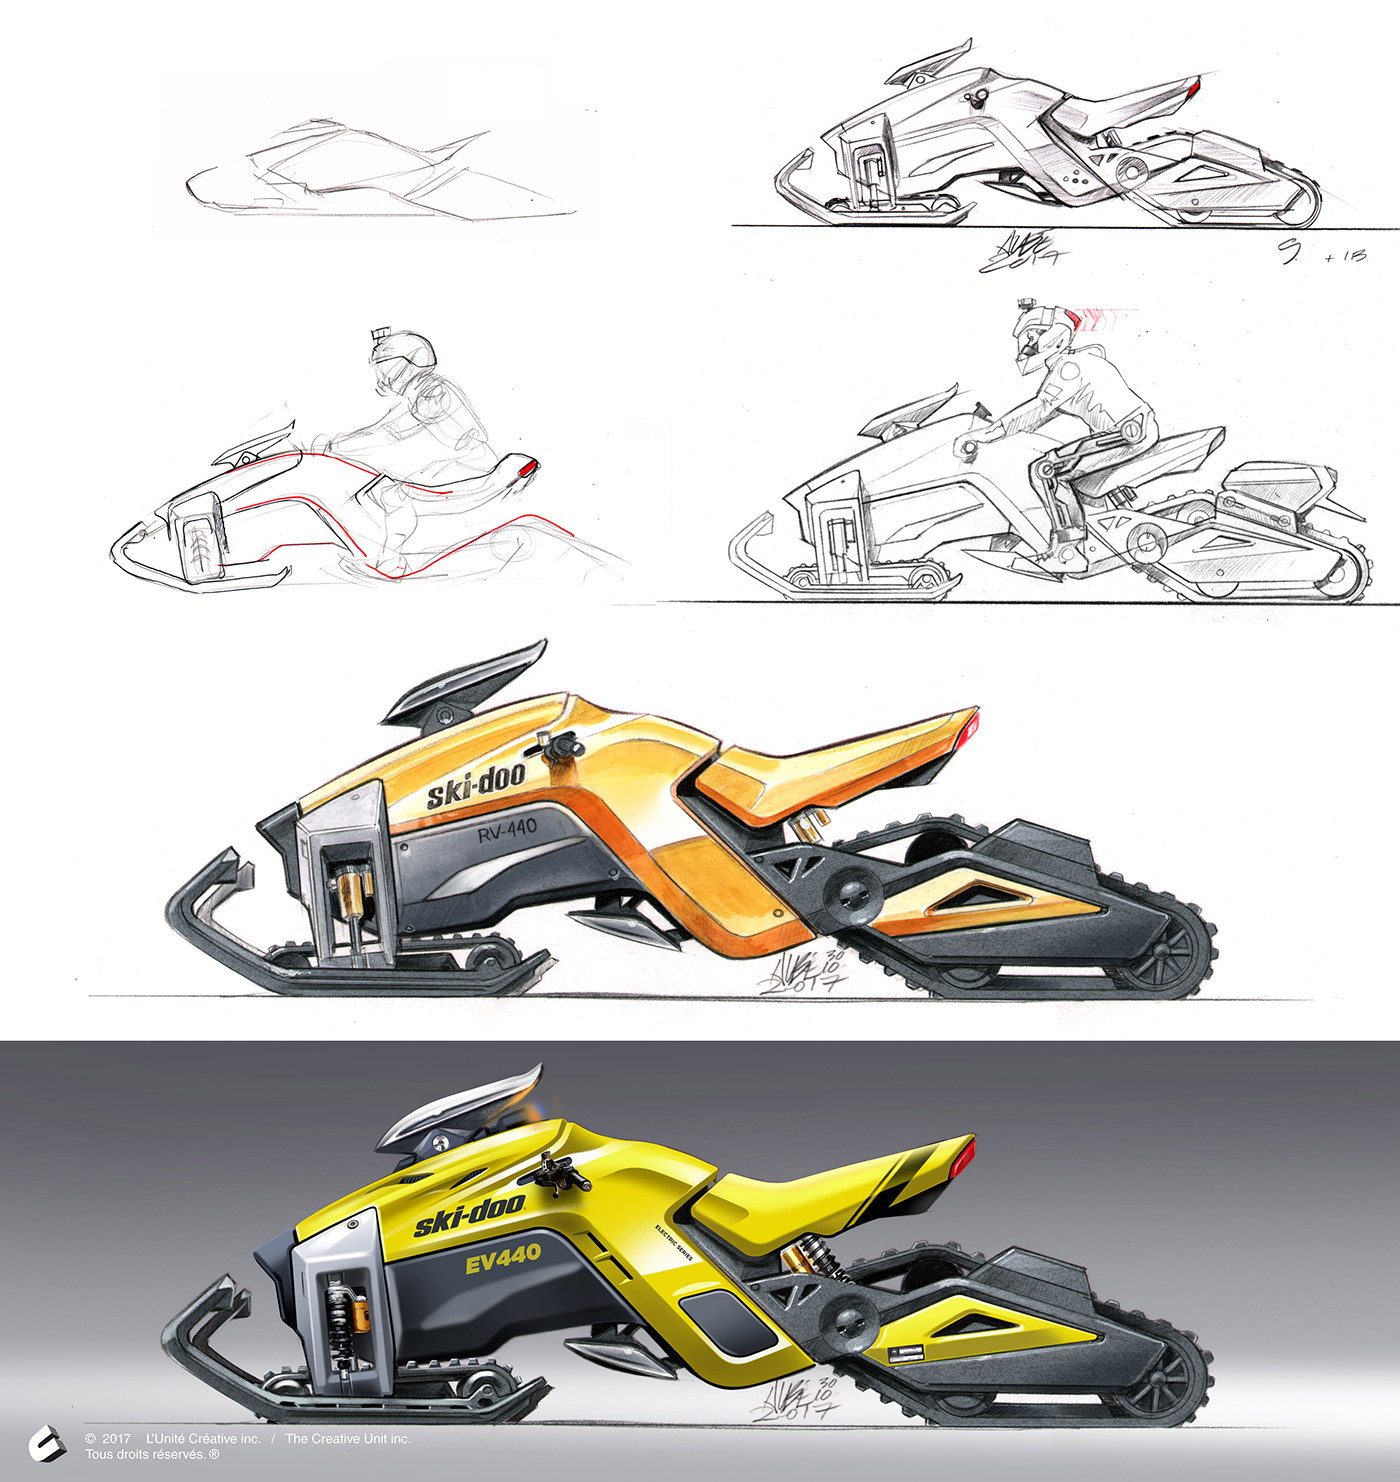 Electric Snowmobile Concept With Three Motorized Tracks On